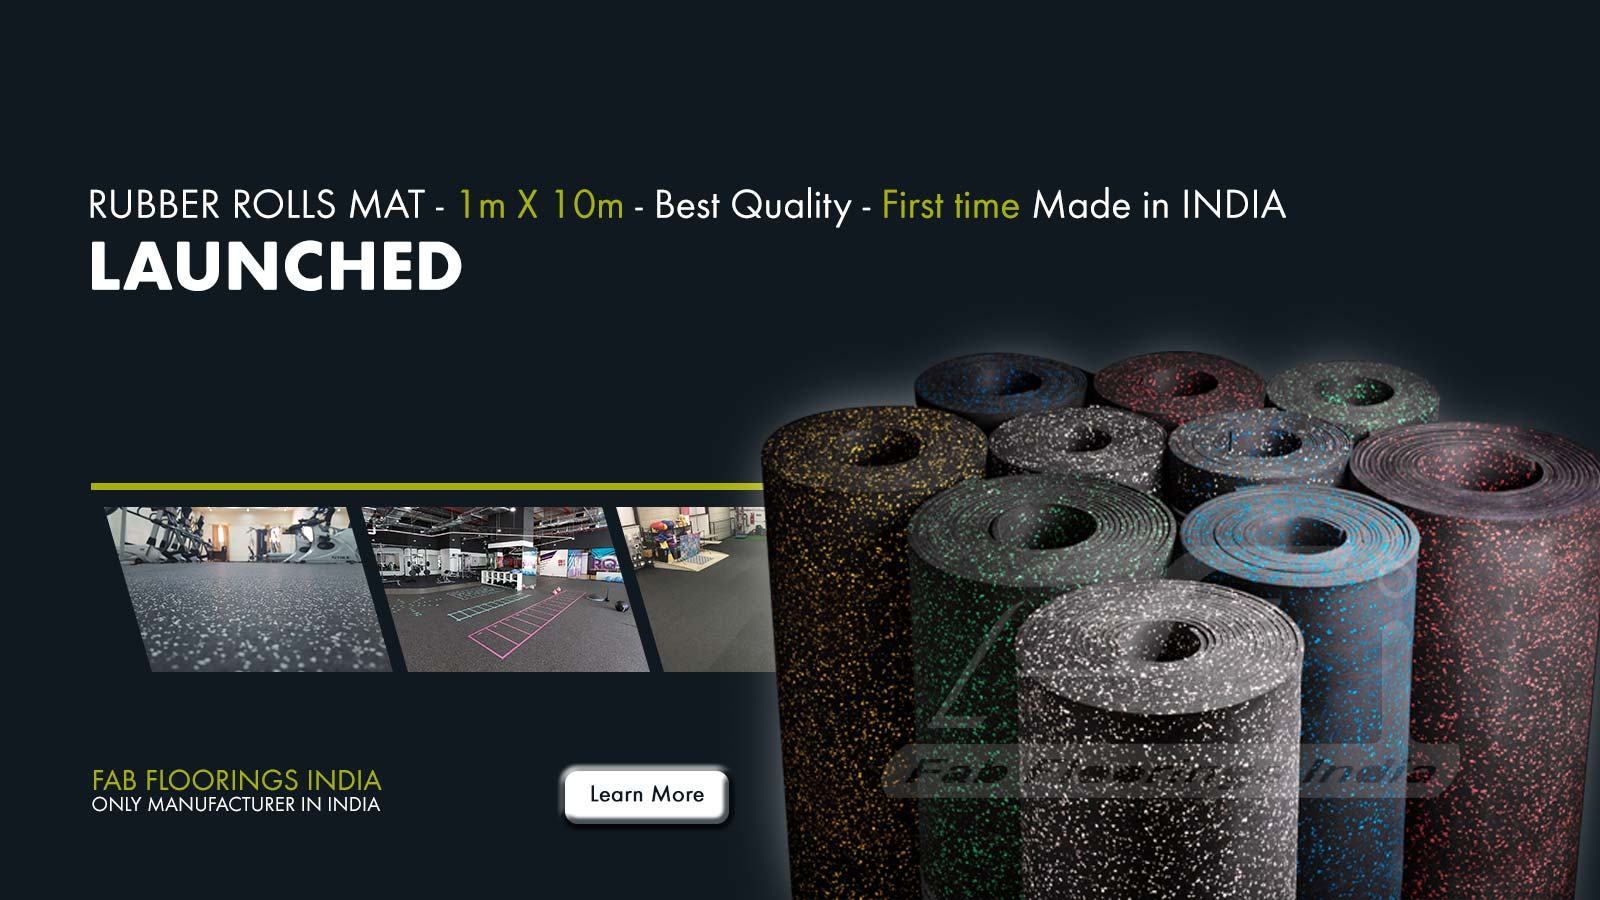 Rubber Rolls Launched - Only Manufacturer in India